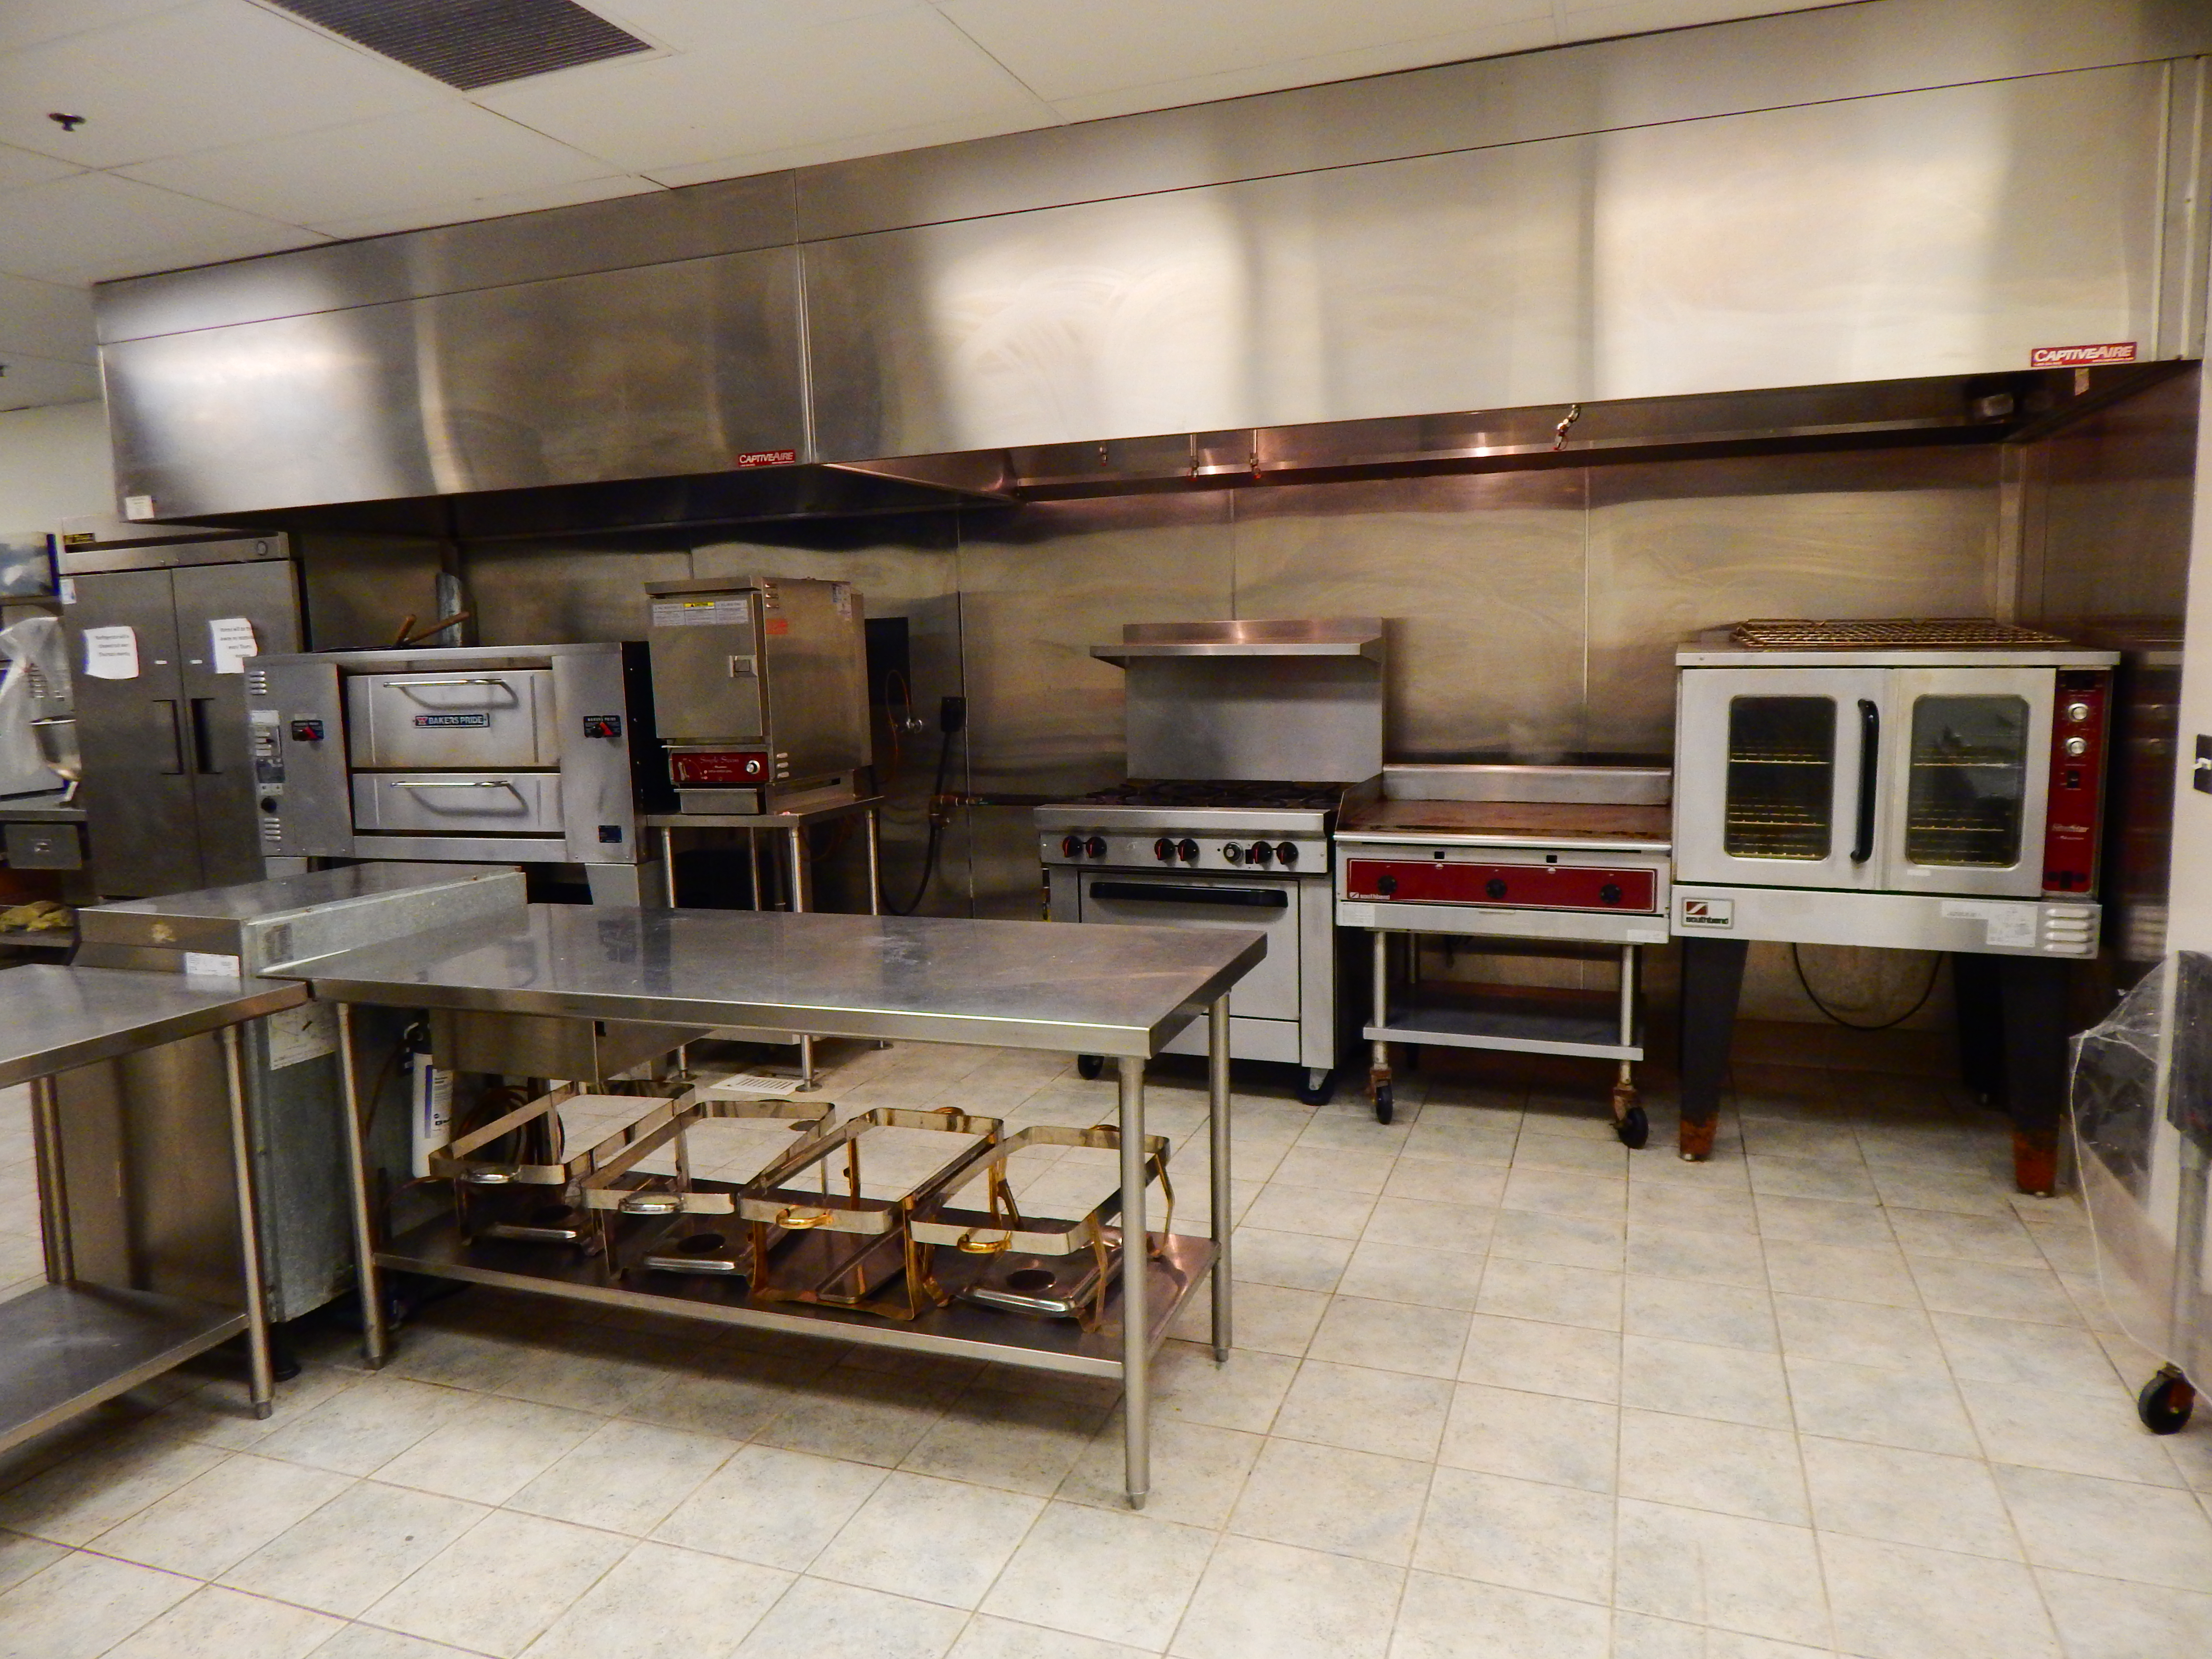 Teichert Commercial Kitchen